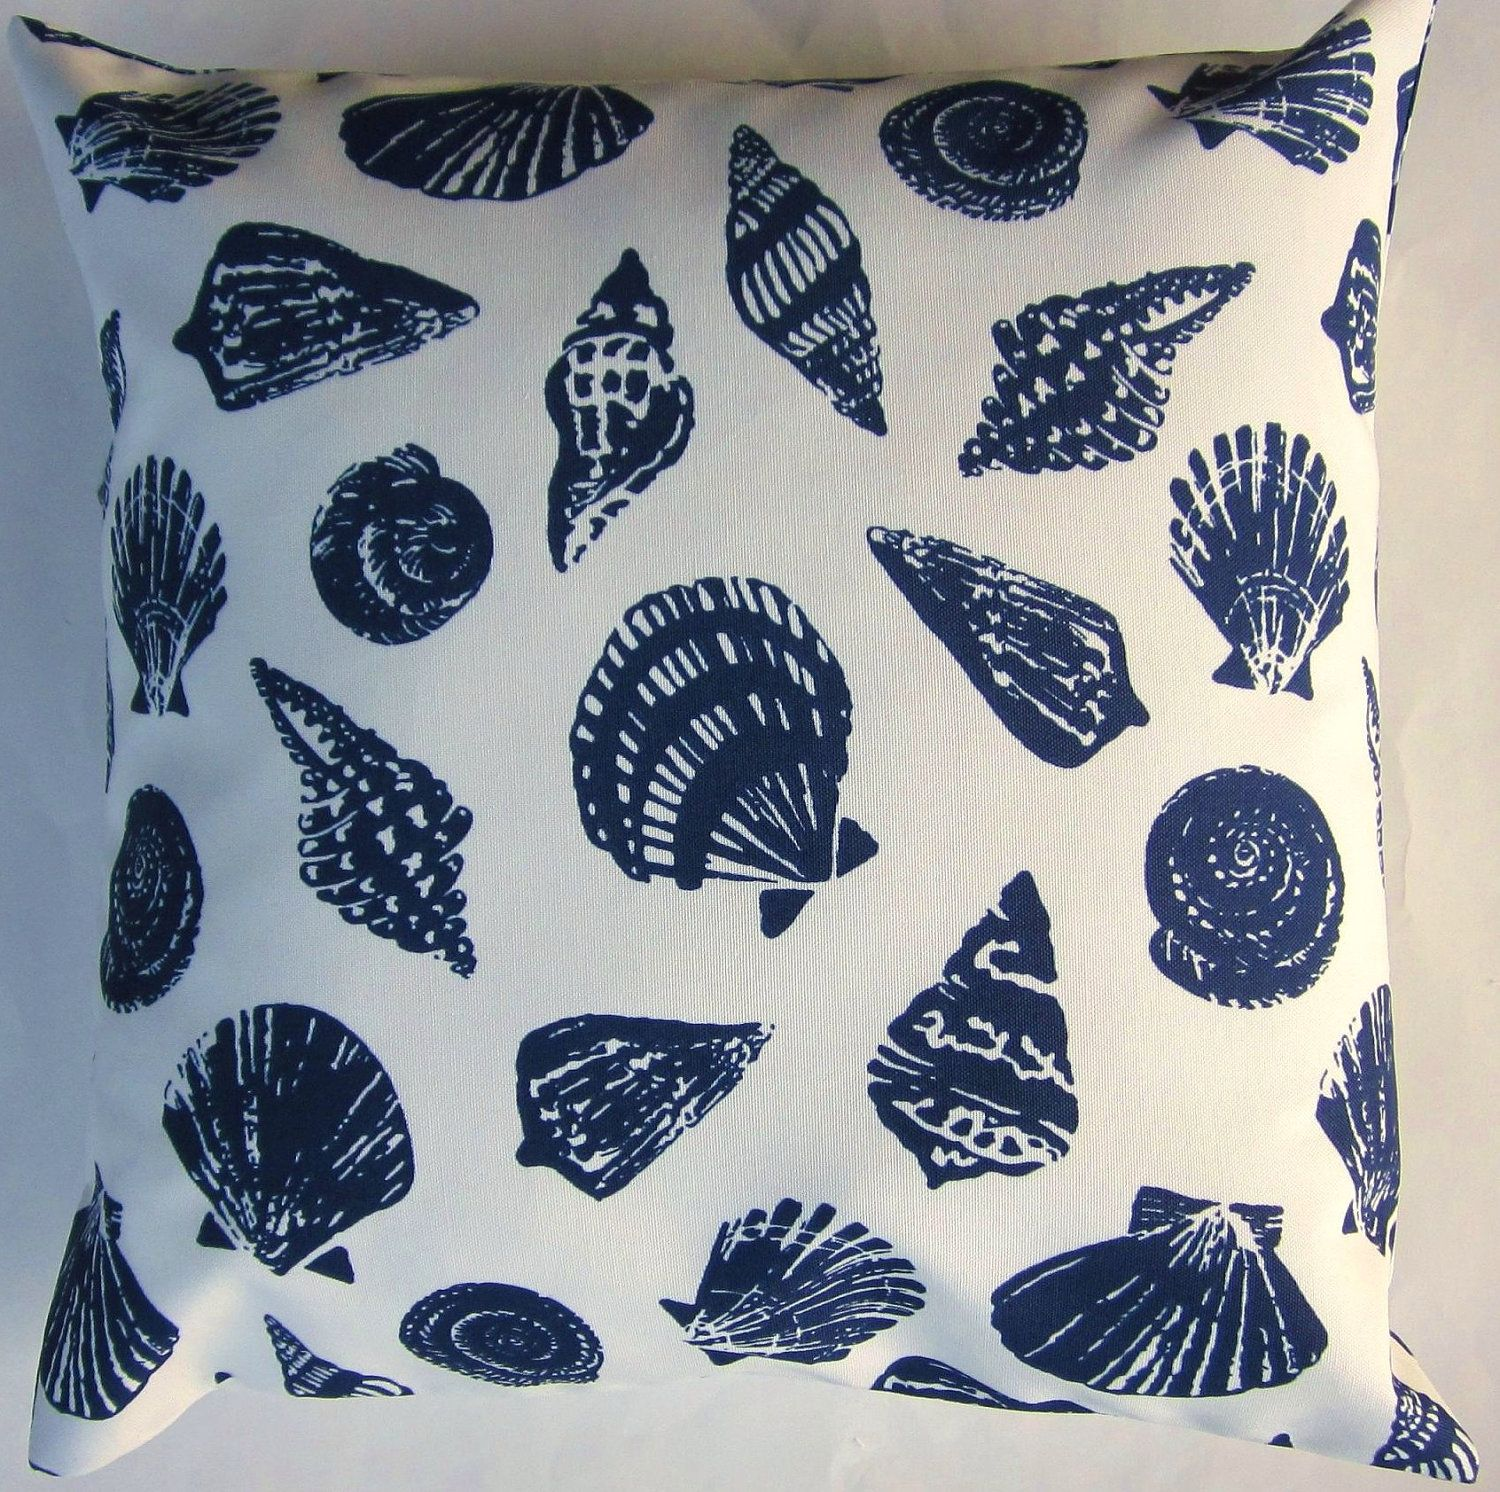 behind the painted indoor aesthetic design easily pillow a use welcome both into great your to outdoor even suitable home way and are pillows better they for summer coastal re